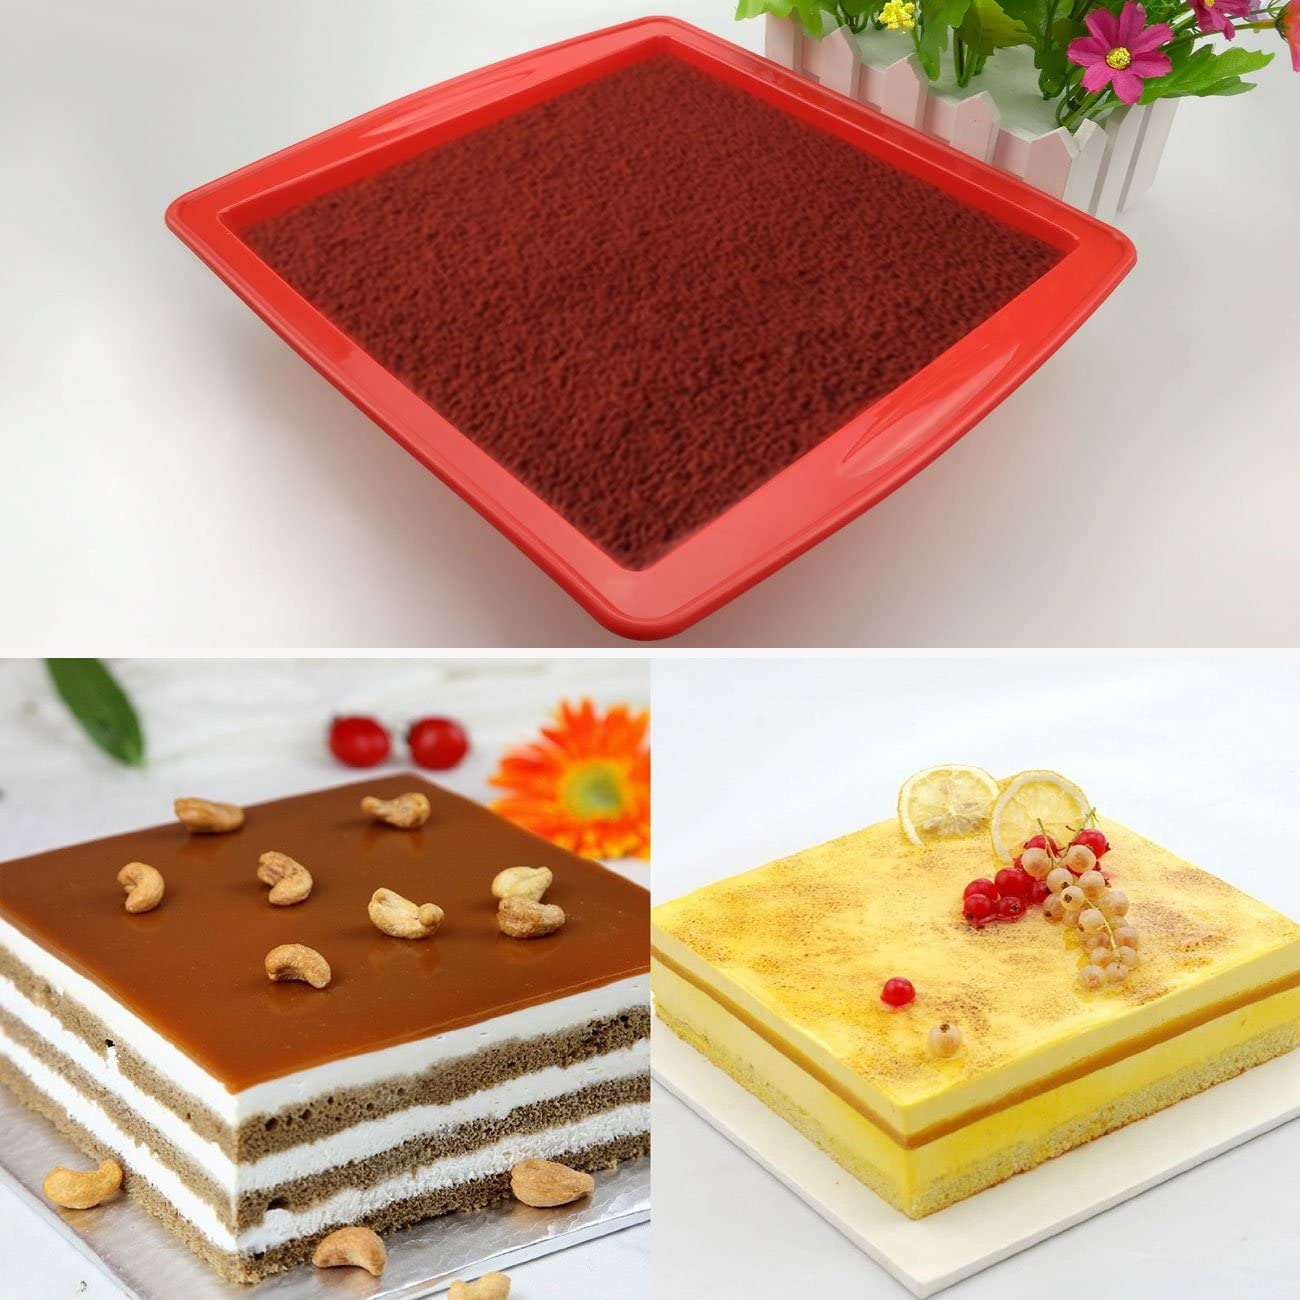 Pizza(Rectangle) Bread Loaf Tins SILIVO 8.9x3.7x2.4 Silicone Non Stick Baking Tray Cake Bakeware Baking Moulds Tins for Cakes Pancakes Pie